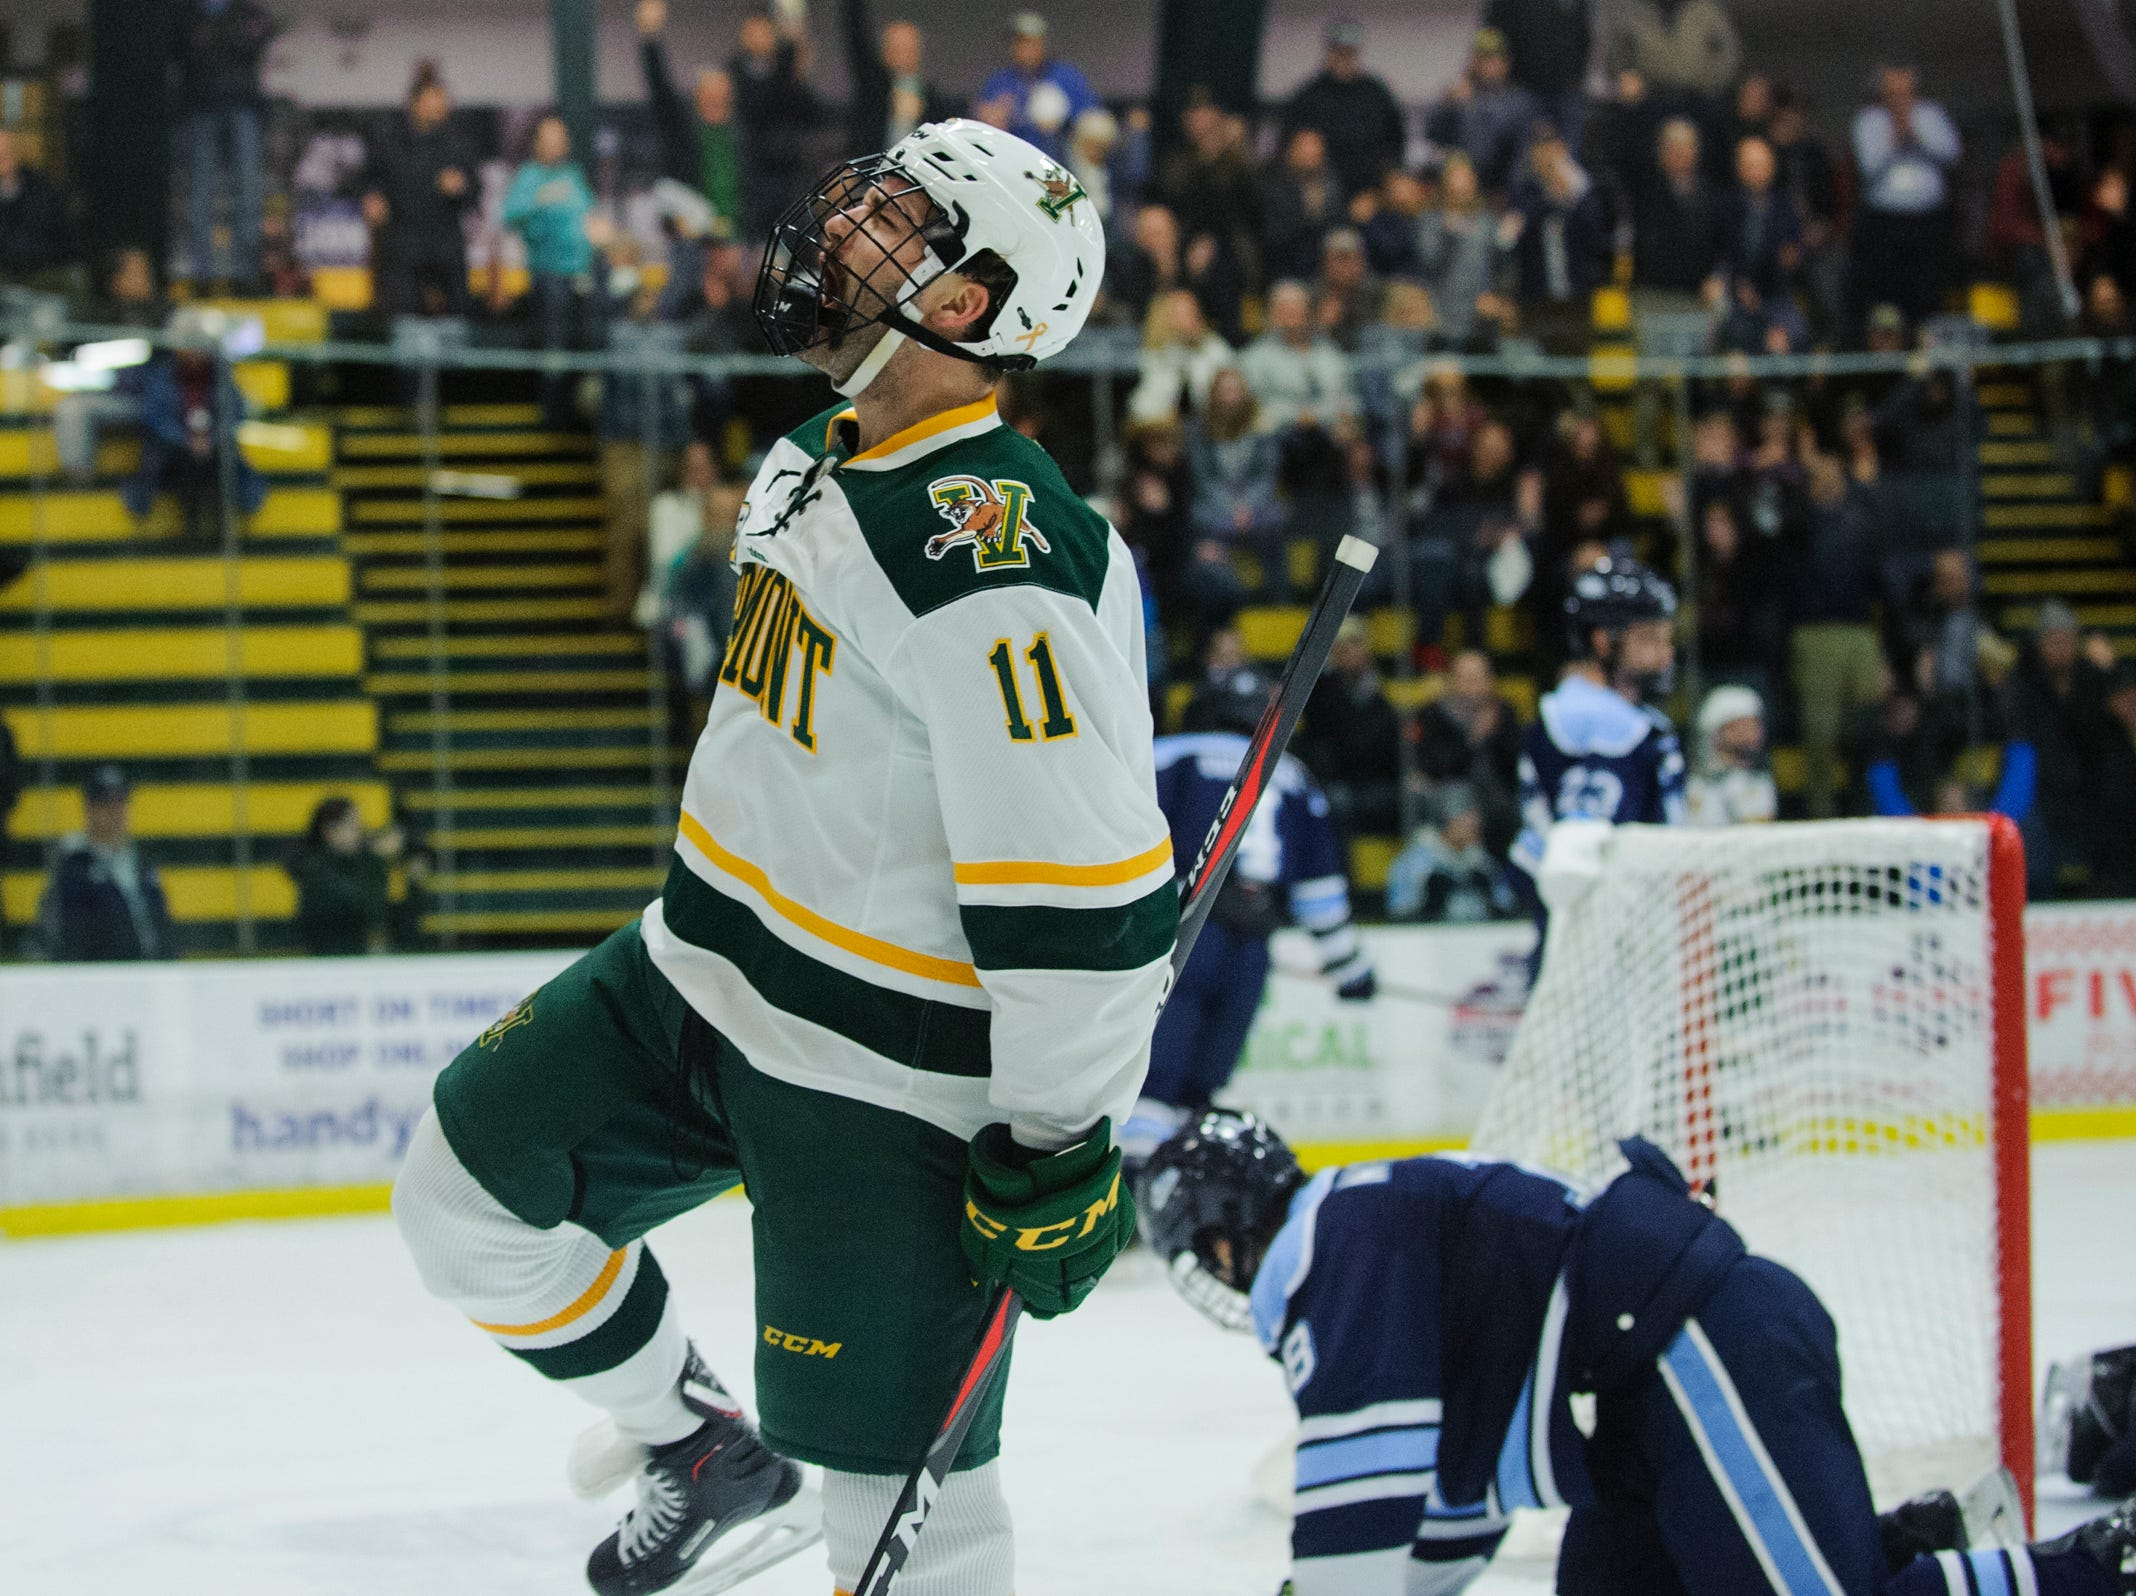 Vermont forward Conor O'Neil (11) celebrates a goal during the men's hockey game between the Mine Black Bears and the Vermont Catamounts at Gutterson Field House on Friday night November 30, 2018 in Burlington.